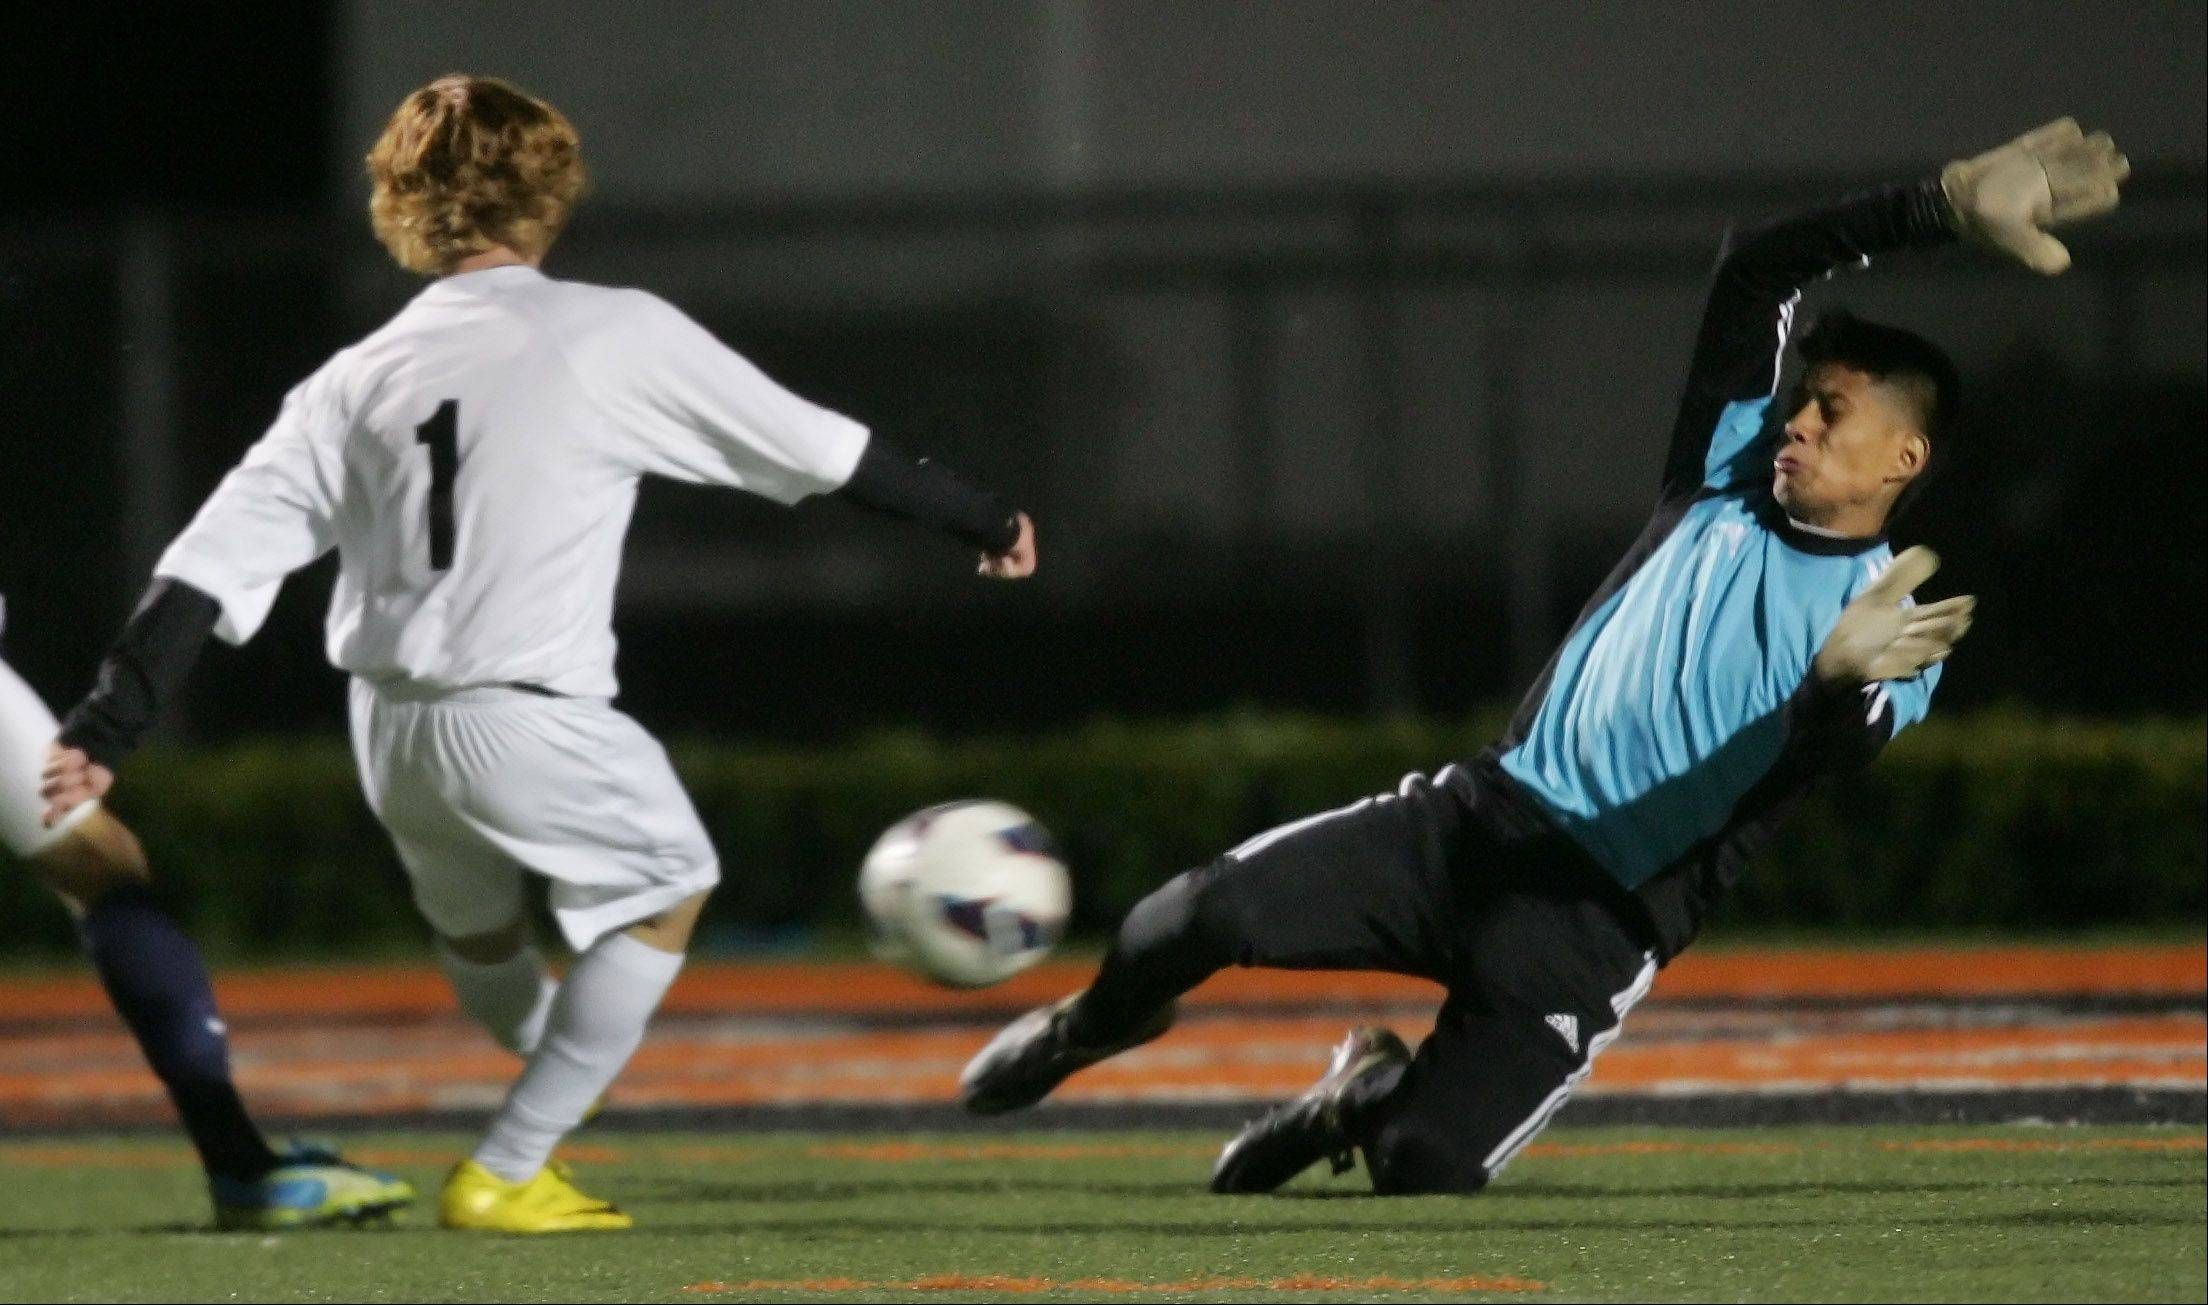 Libertyville midfielder Liam O'Connell shoots past Round Lake goalie Jose Martinez for the second goal of the game during Thursday's NSC title game.